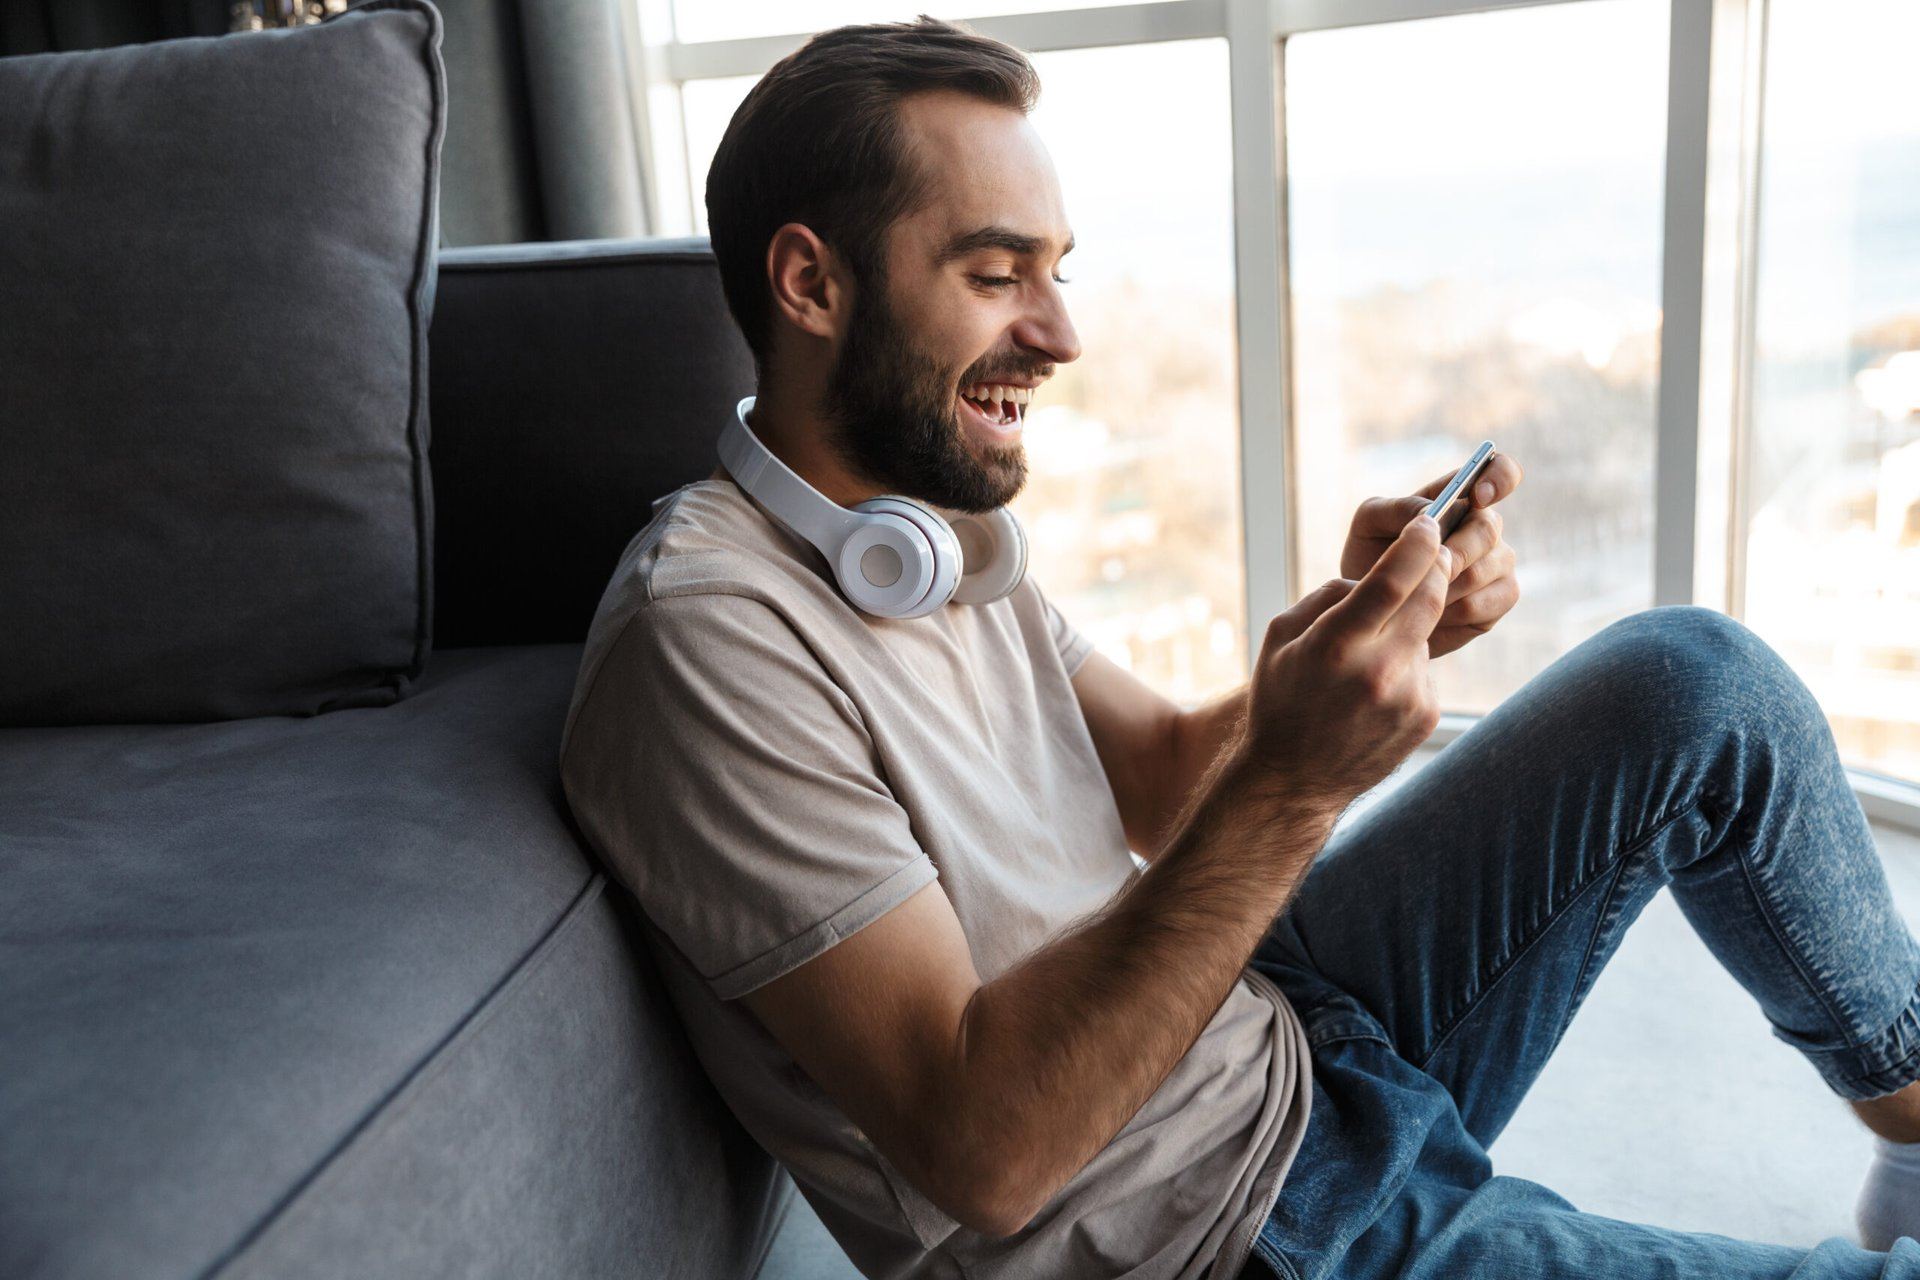 Man excited about his phone plan